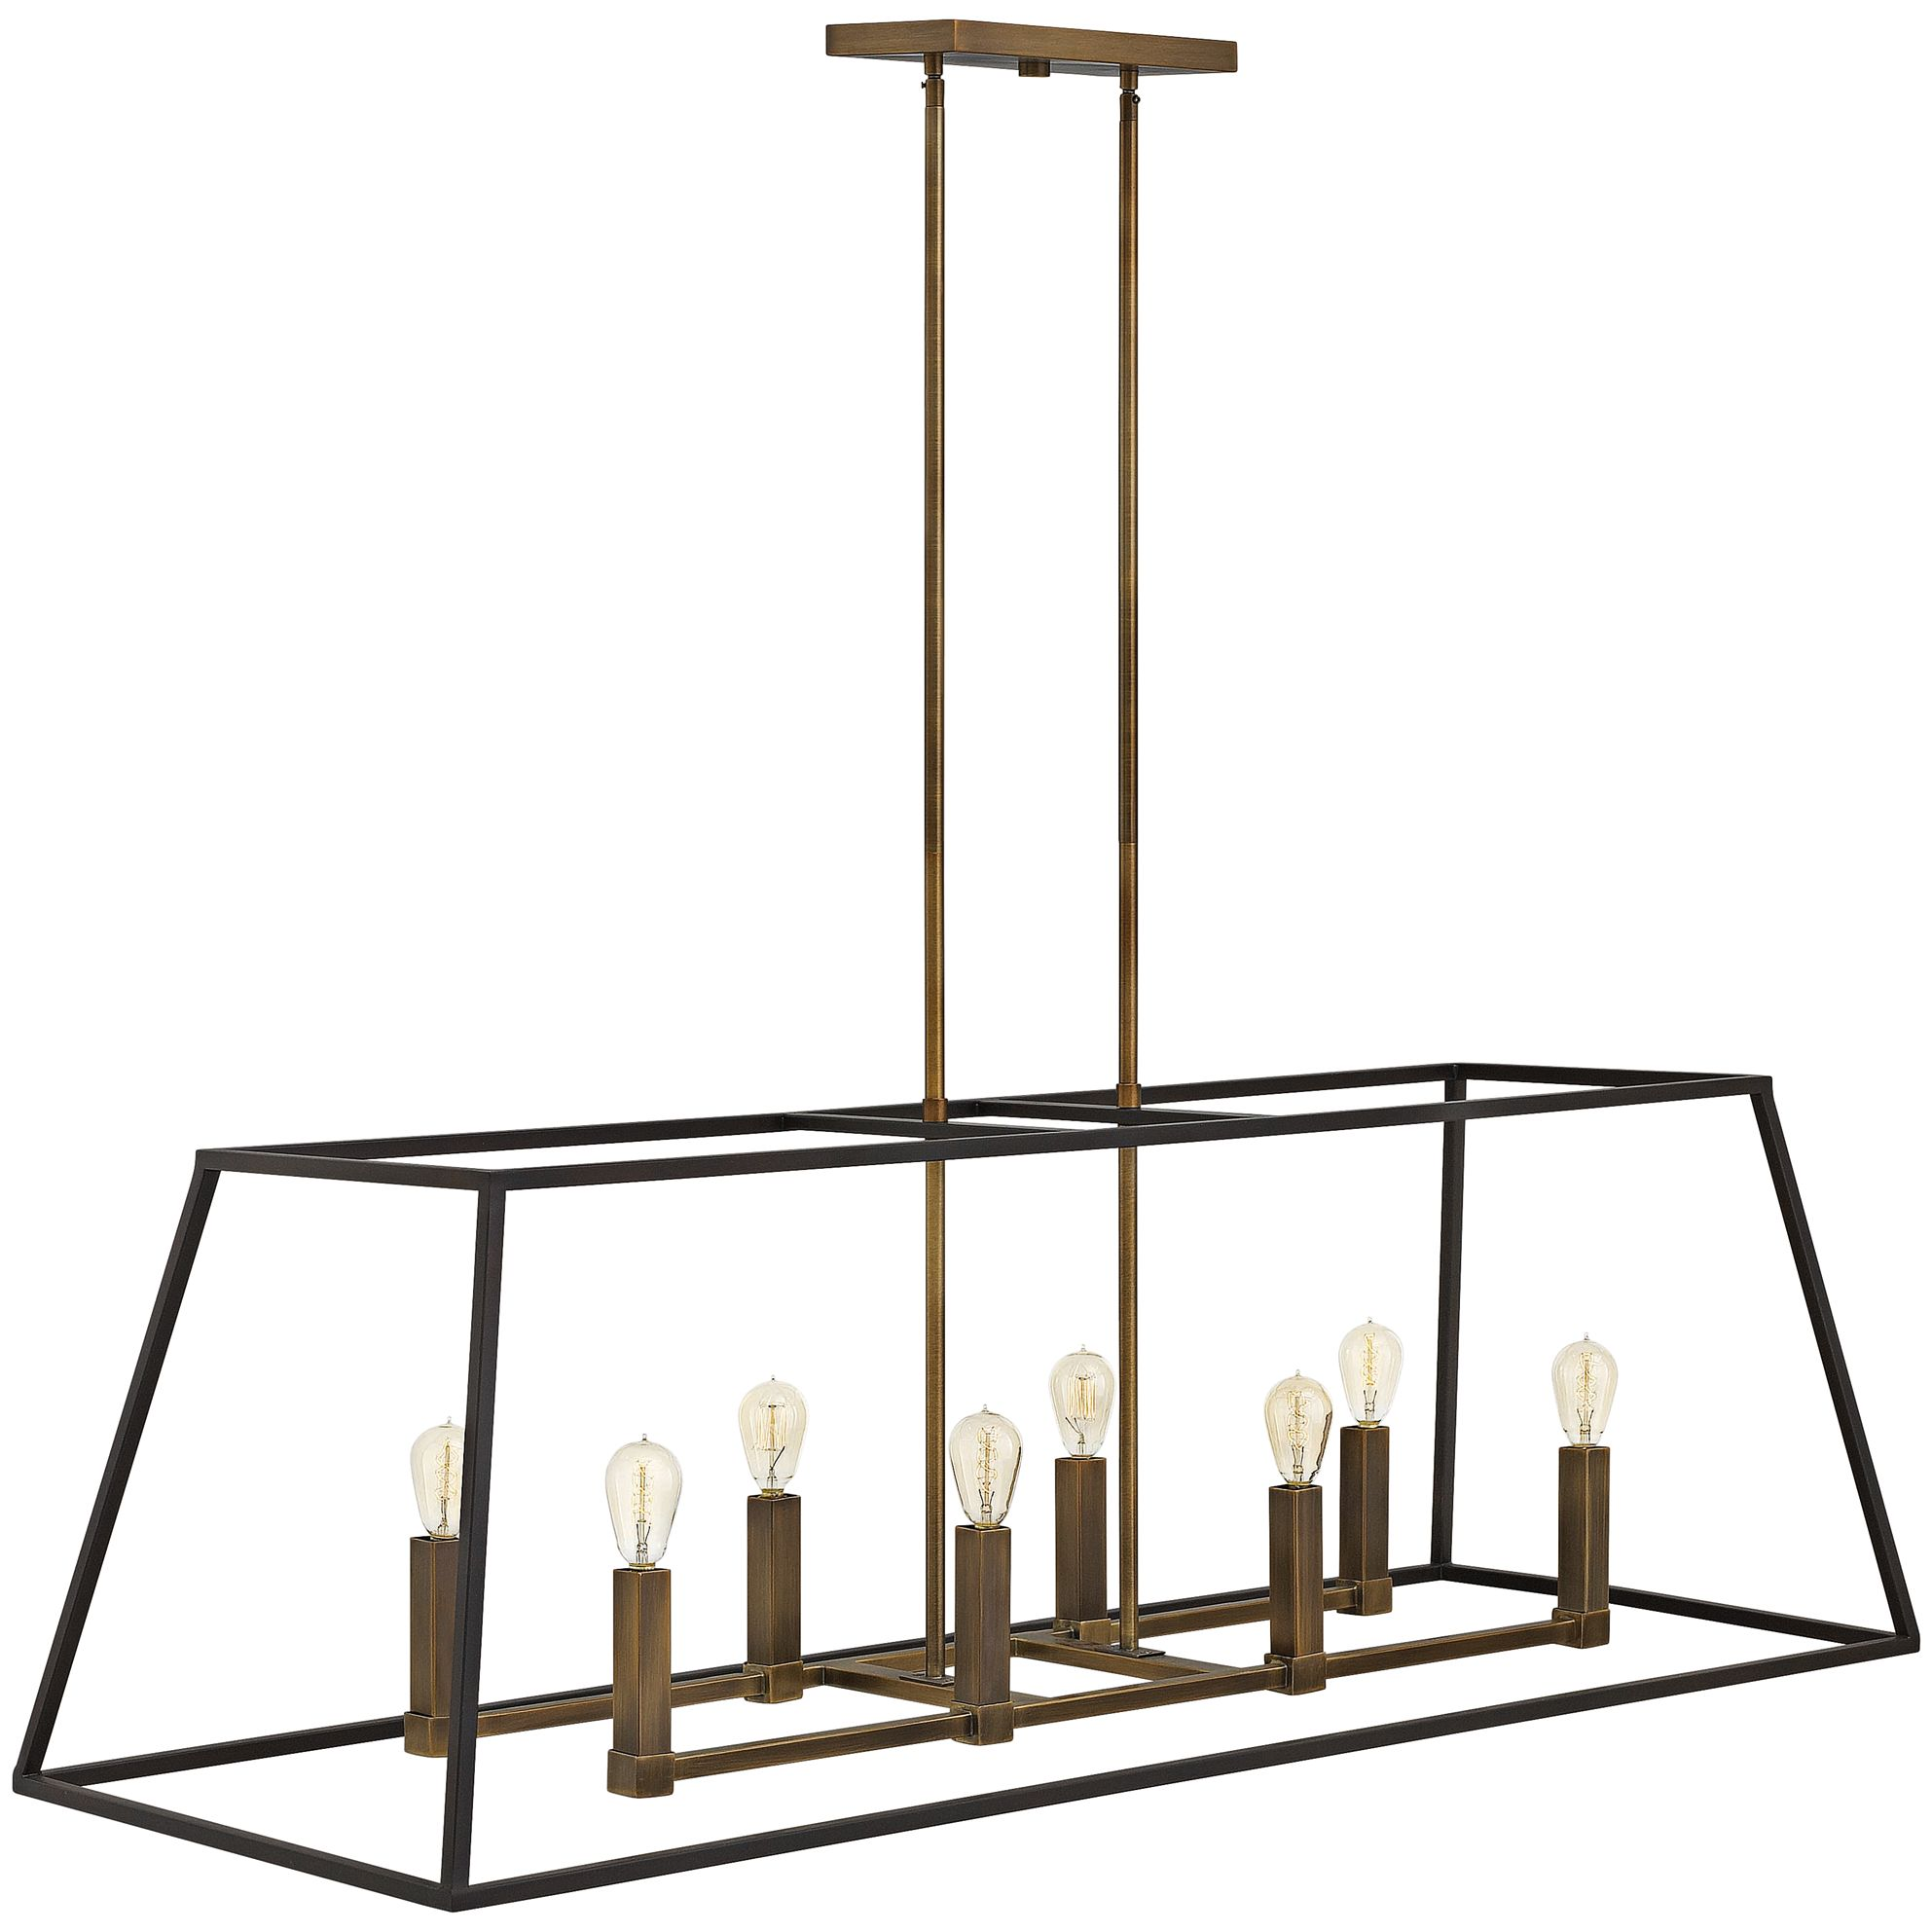 Epic Clean Lines with a tapered ends and a two twon finish make this simple chandelier anything but plain jane Hinkley Fulton Chandelier from LampsPlus